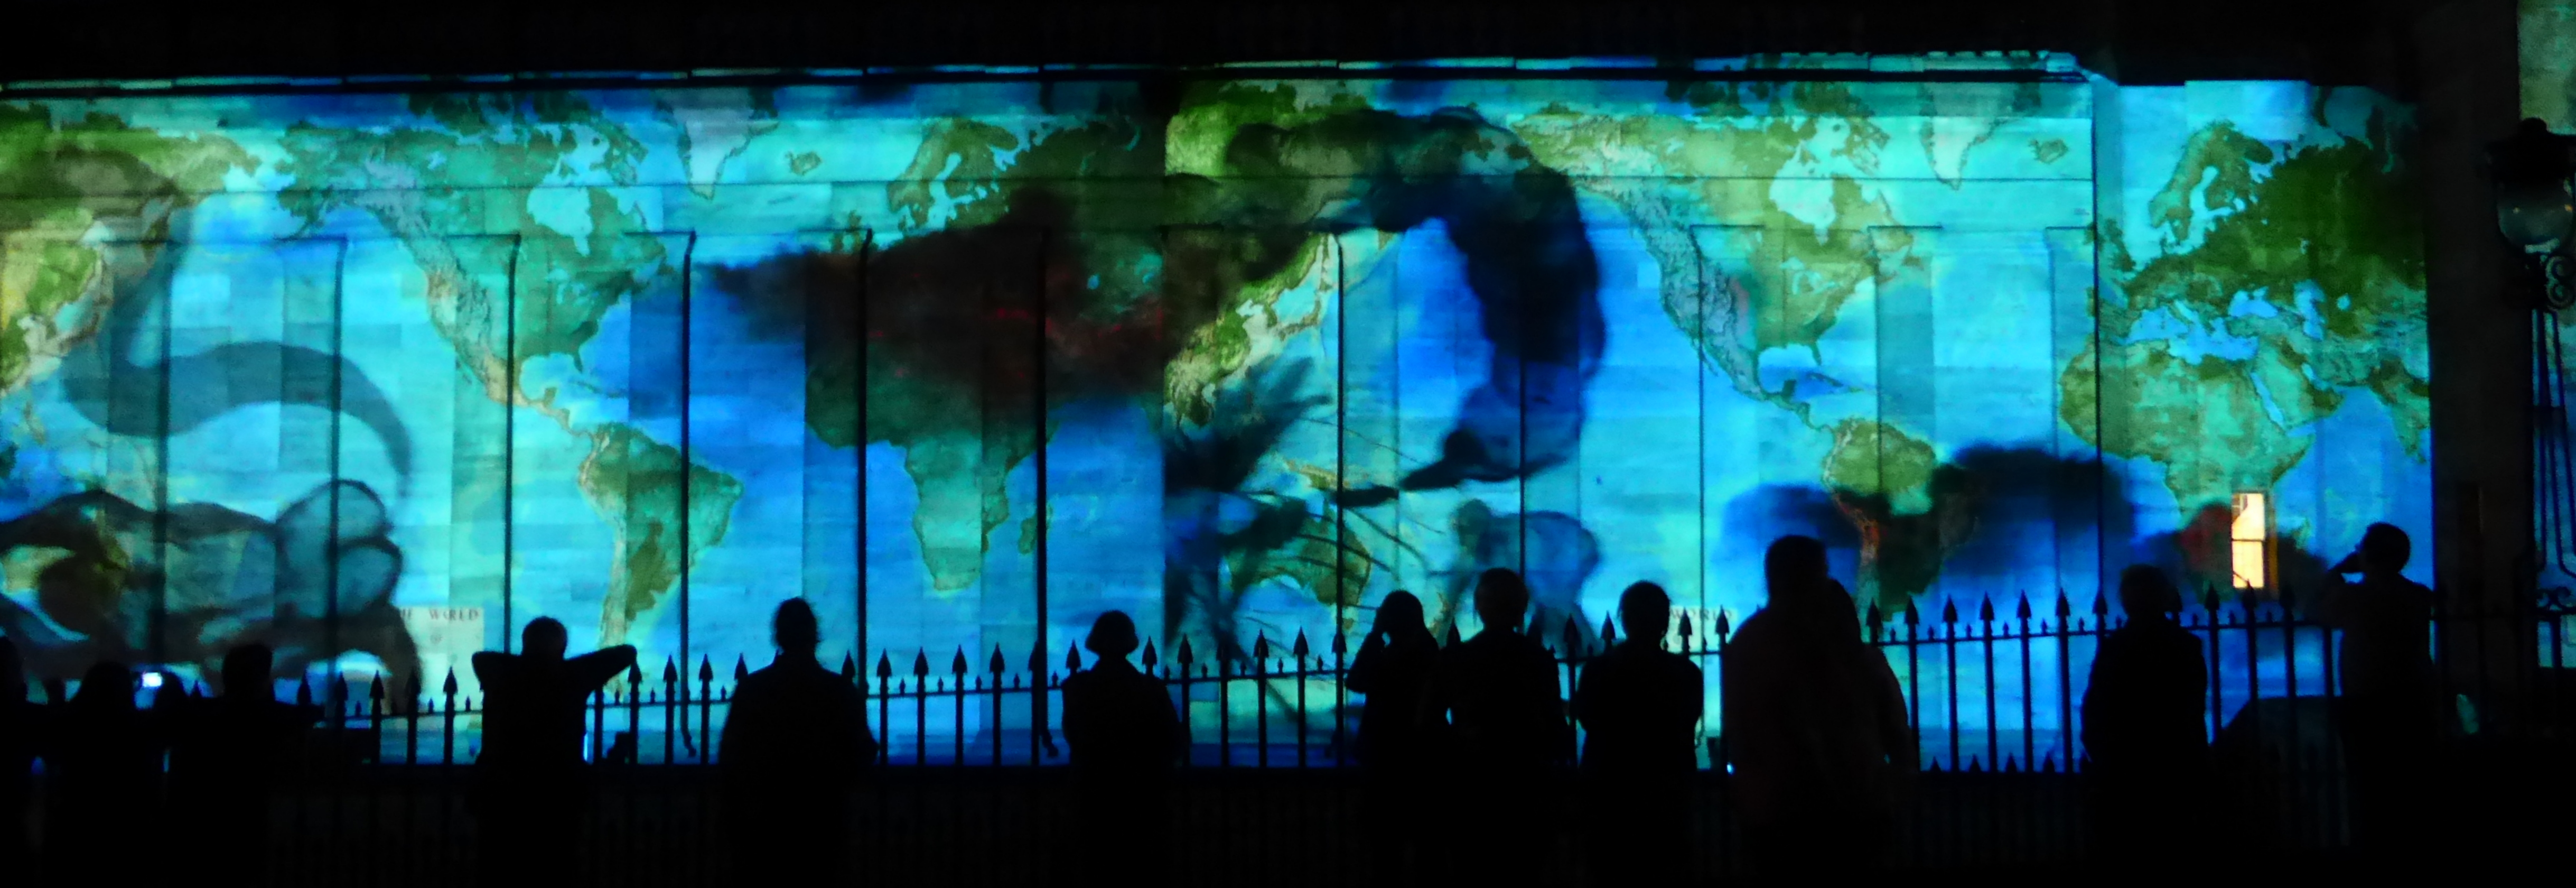 """""""In Search of Vanished Blood"""". Projection at the Edinburgh Fringe Festival. A world map overlaid with black swirls is projected onto a stone building, with people's silhouettes outlined against the light."""